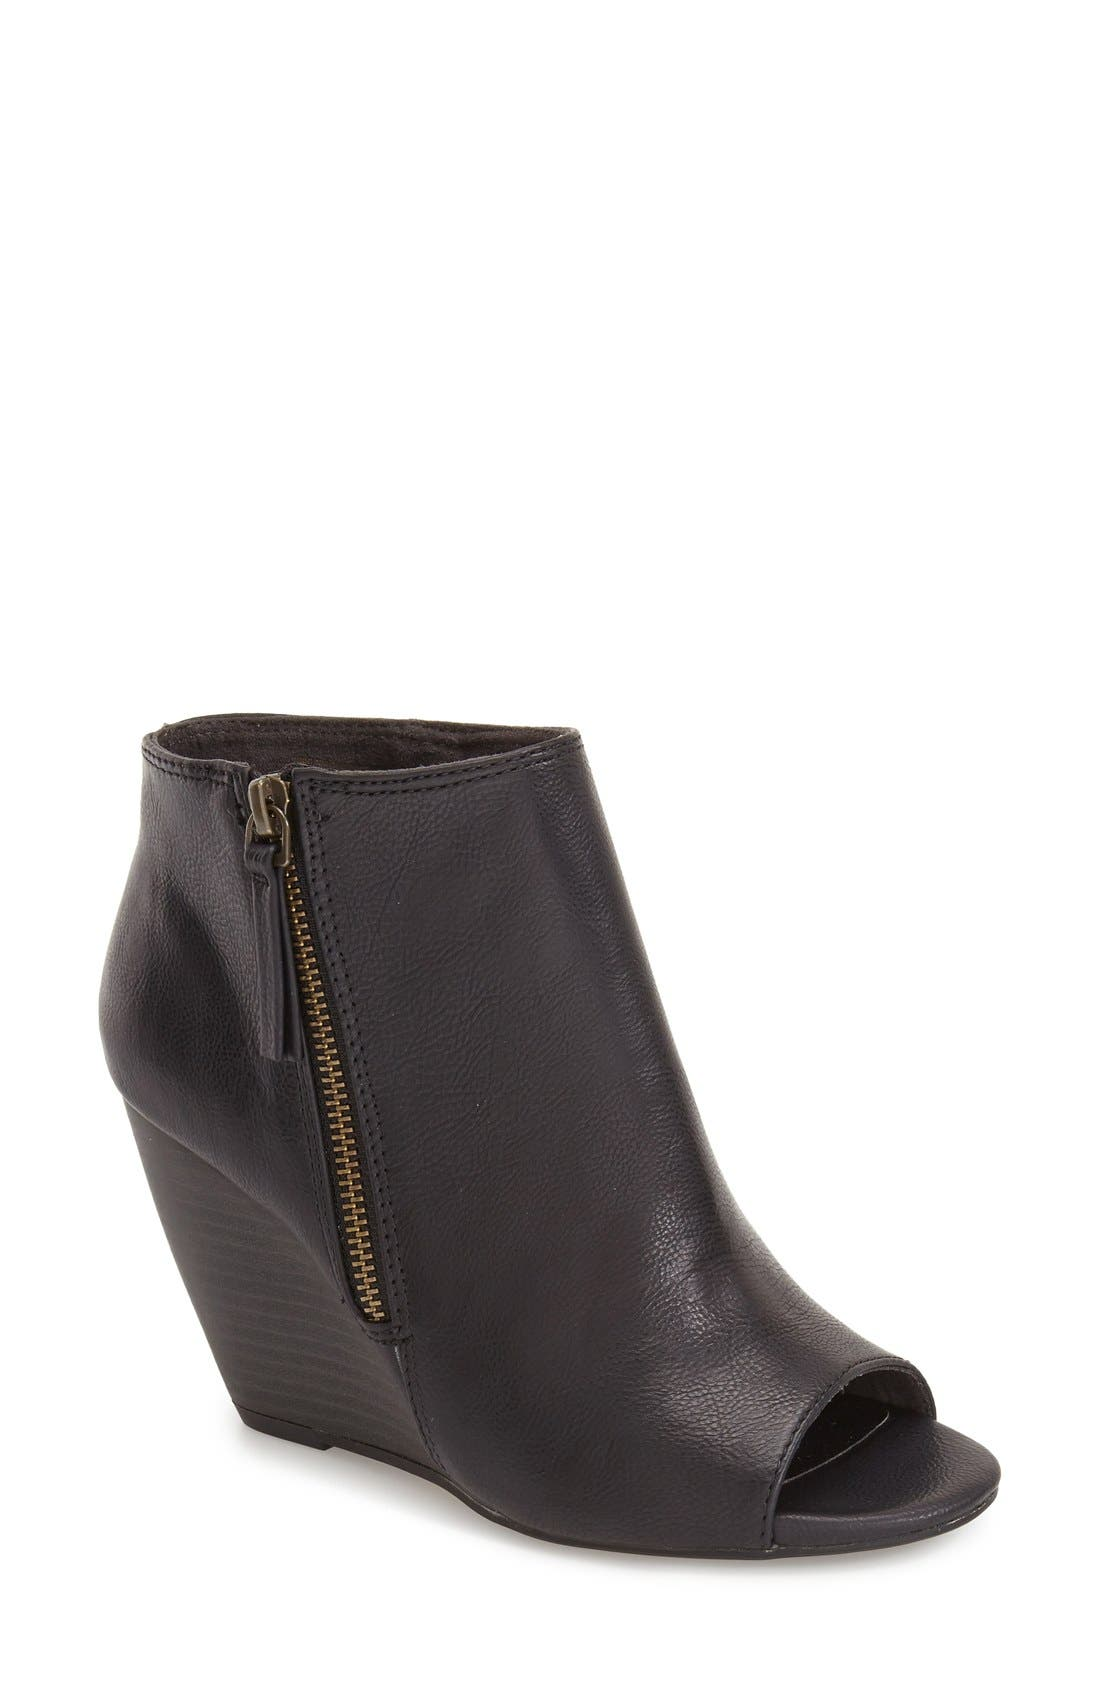 'Rebellion' Peep Toe Wedge Bootie, Main, color, 001